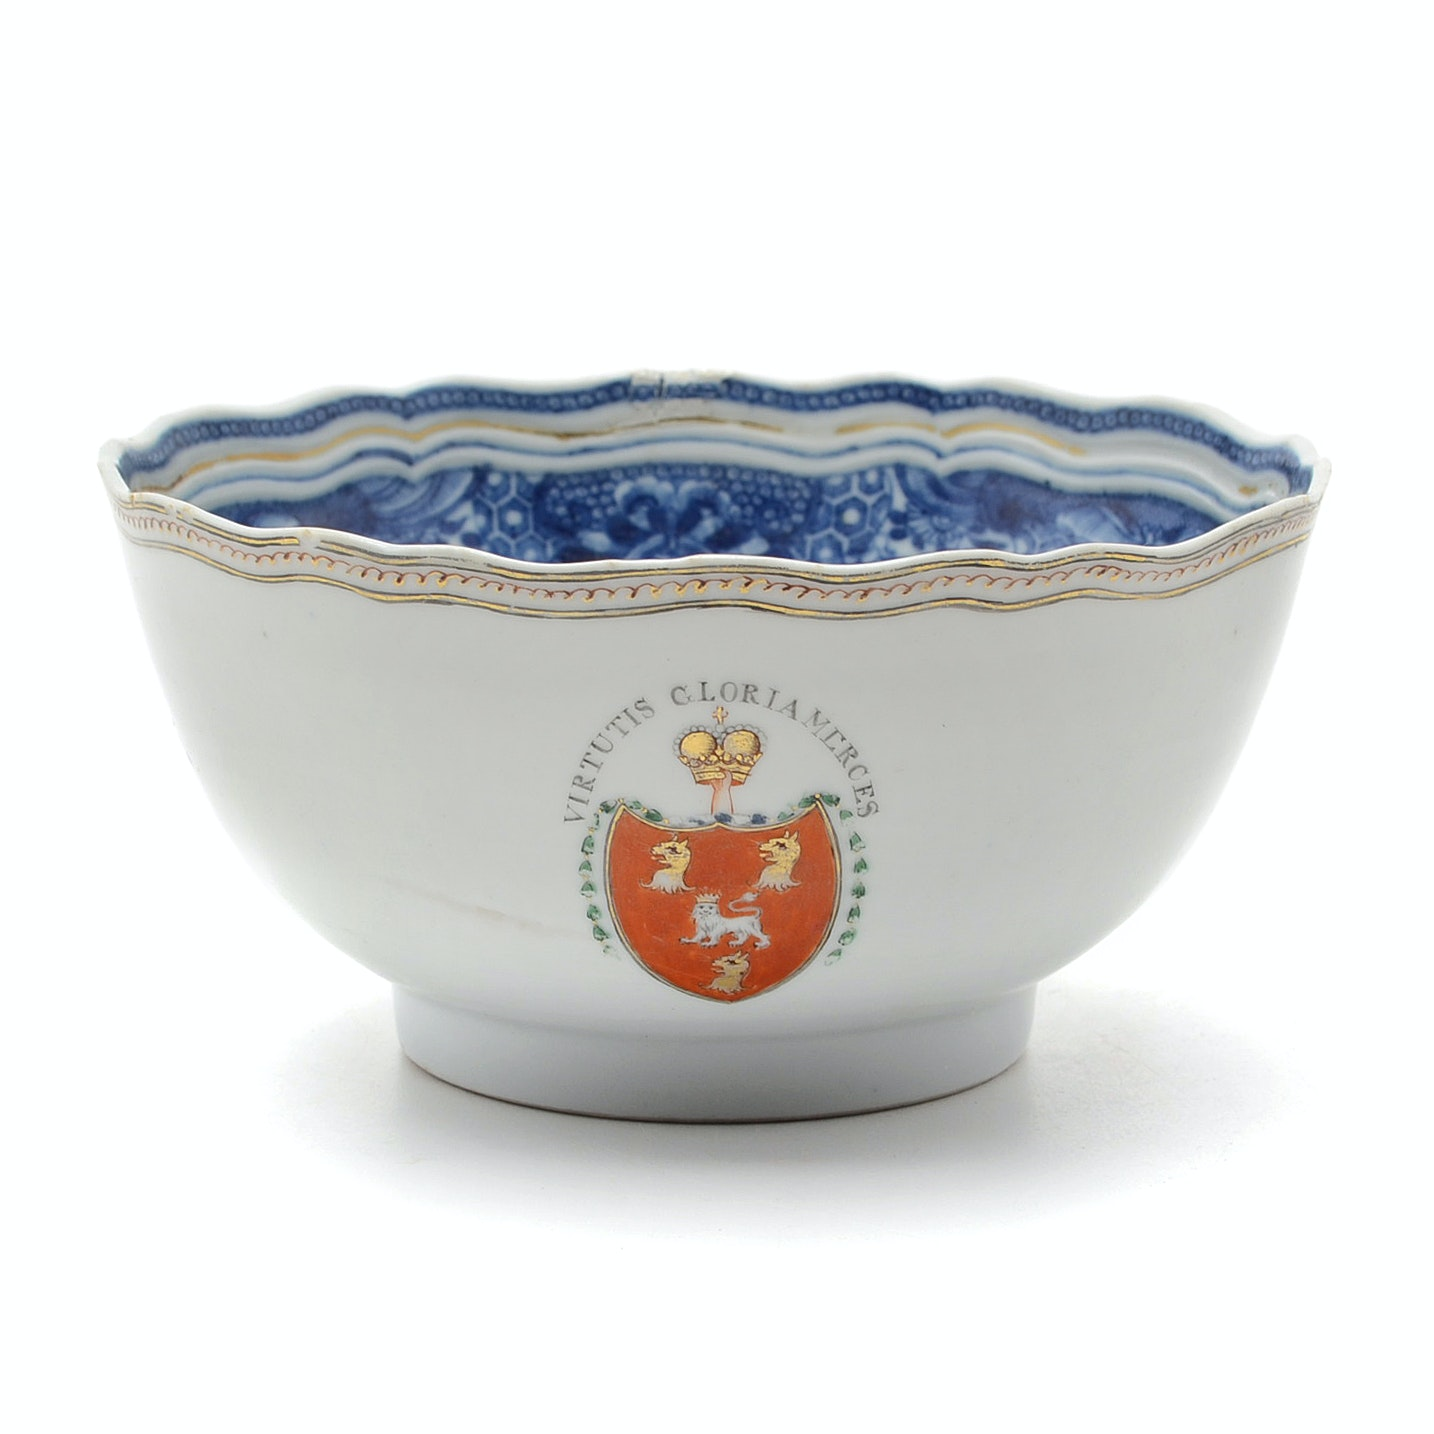 18th Century Chinese Qing Dynasty Export Bowl with Robertson Family Crest